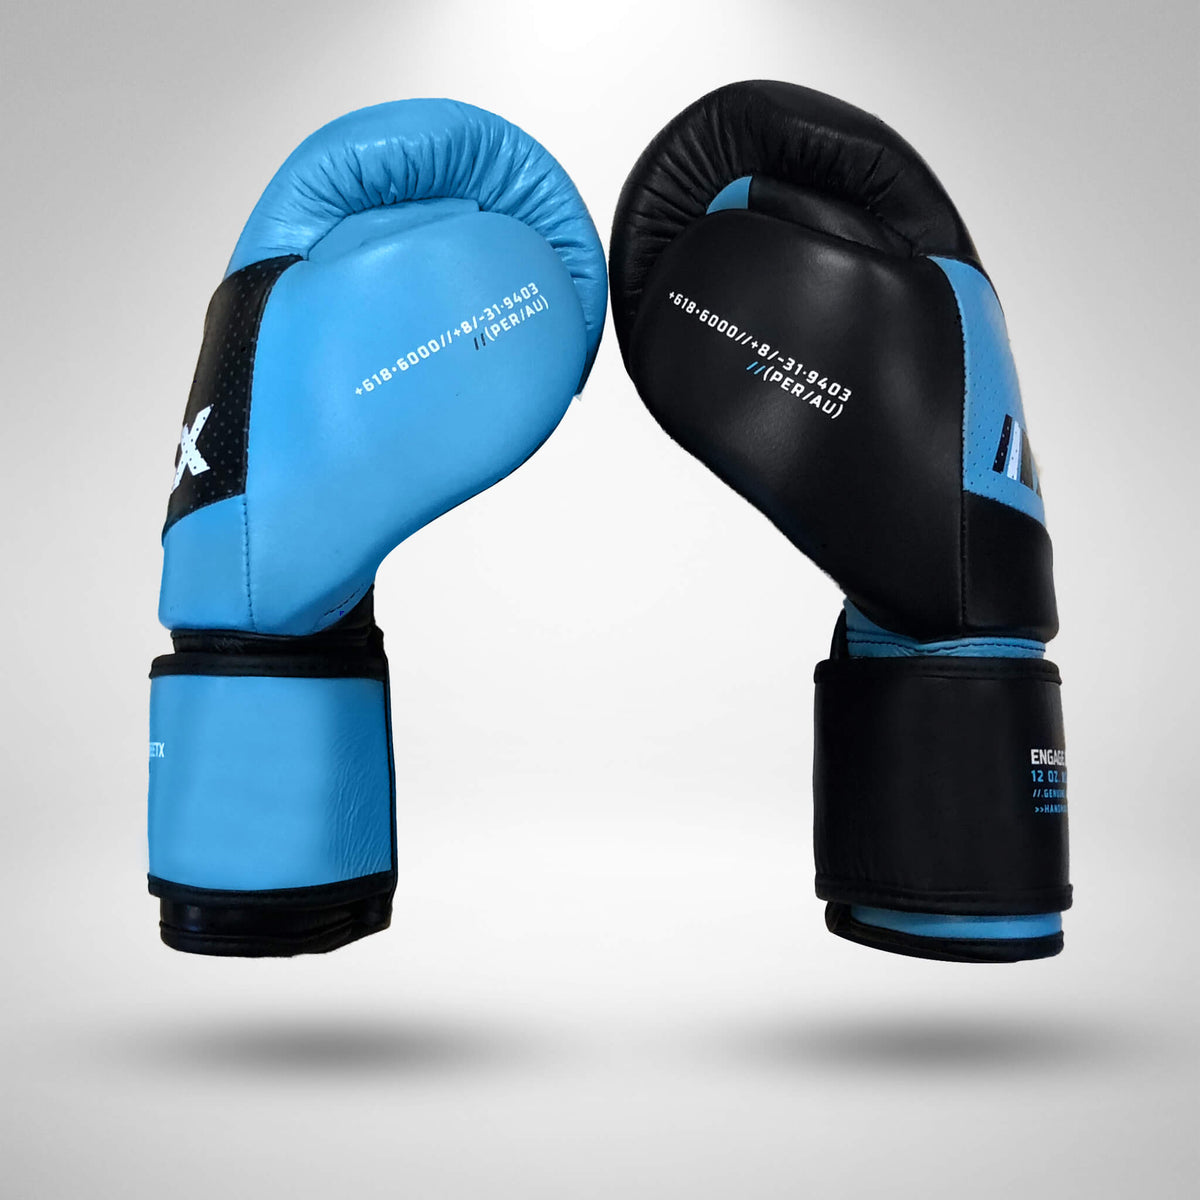 Engage x StreetX Reversed Boxing Gloves